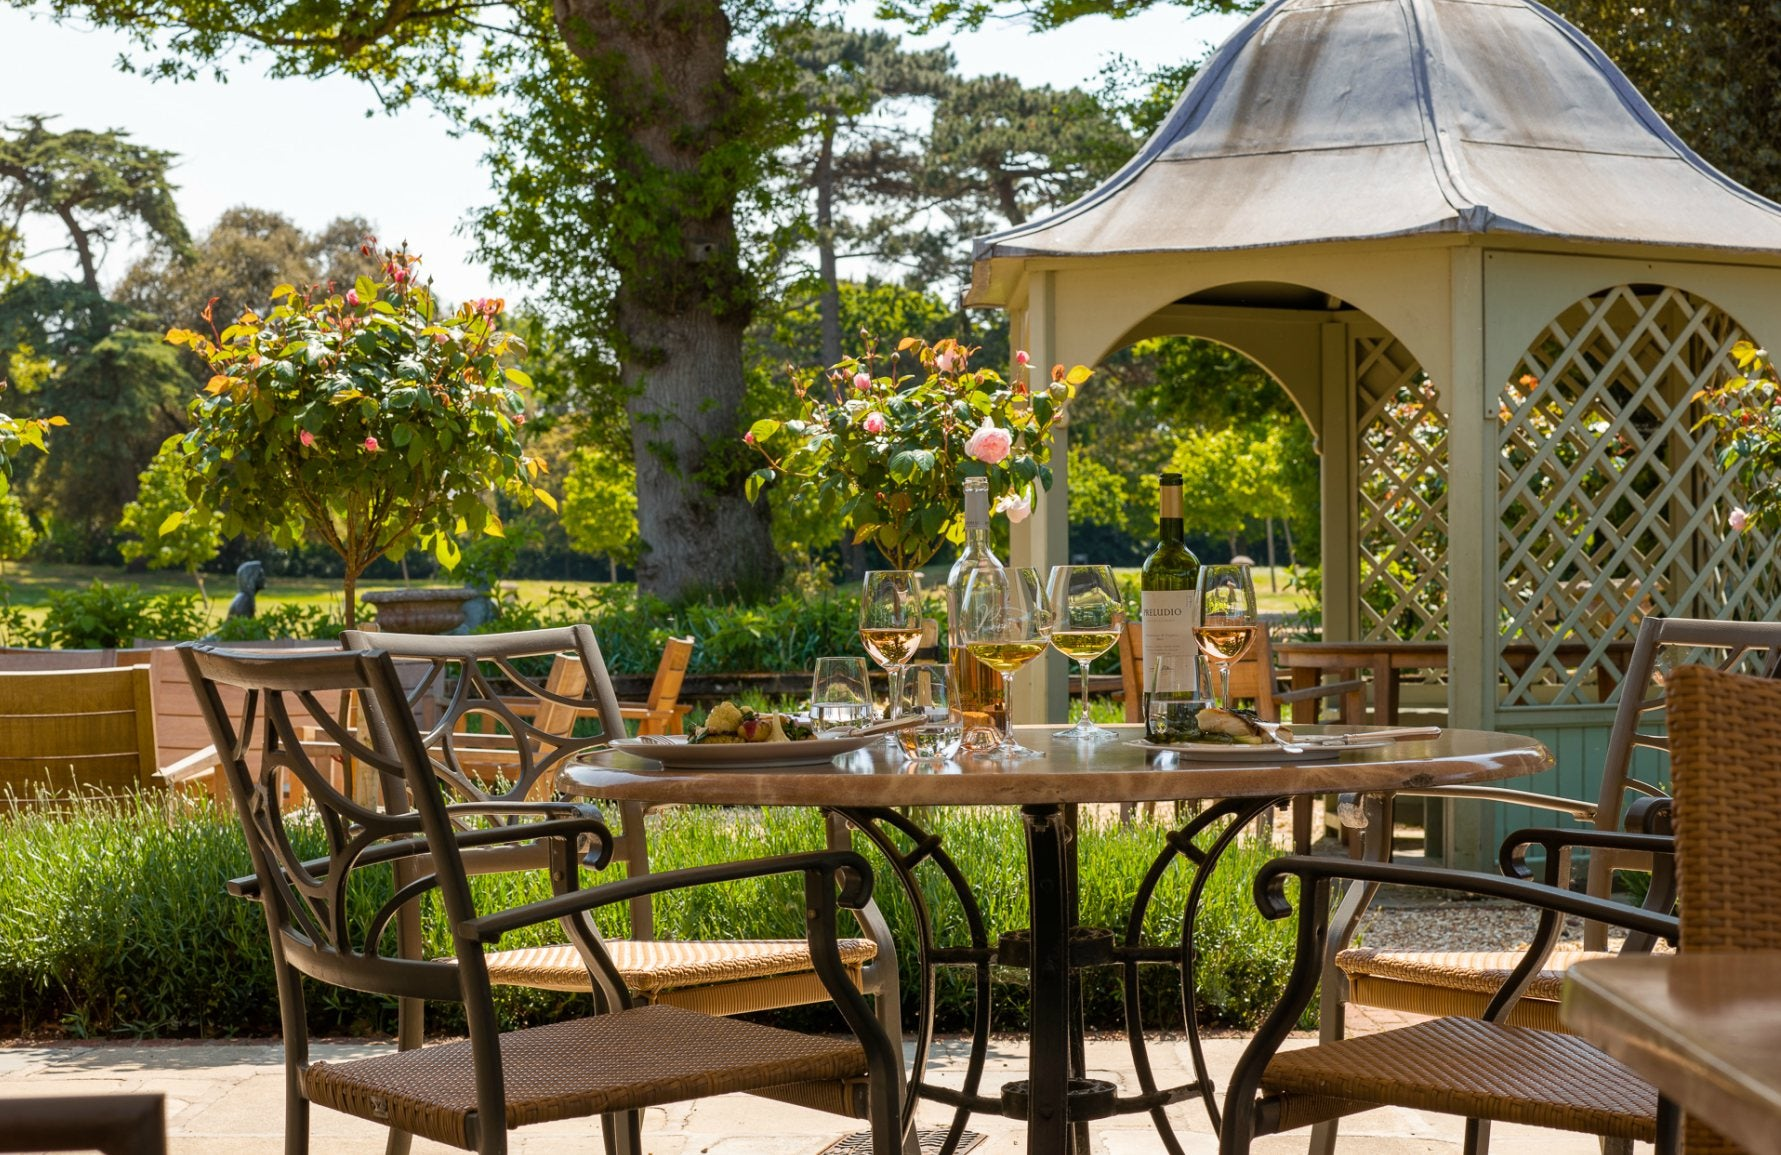 Top Country Hotels for the Bank Holiday Weekend   Chewton Glen hotel   LuxDeco.com